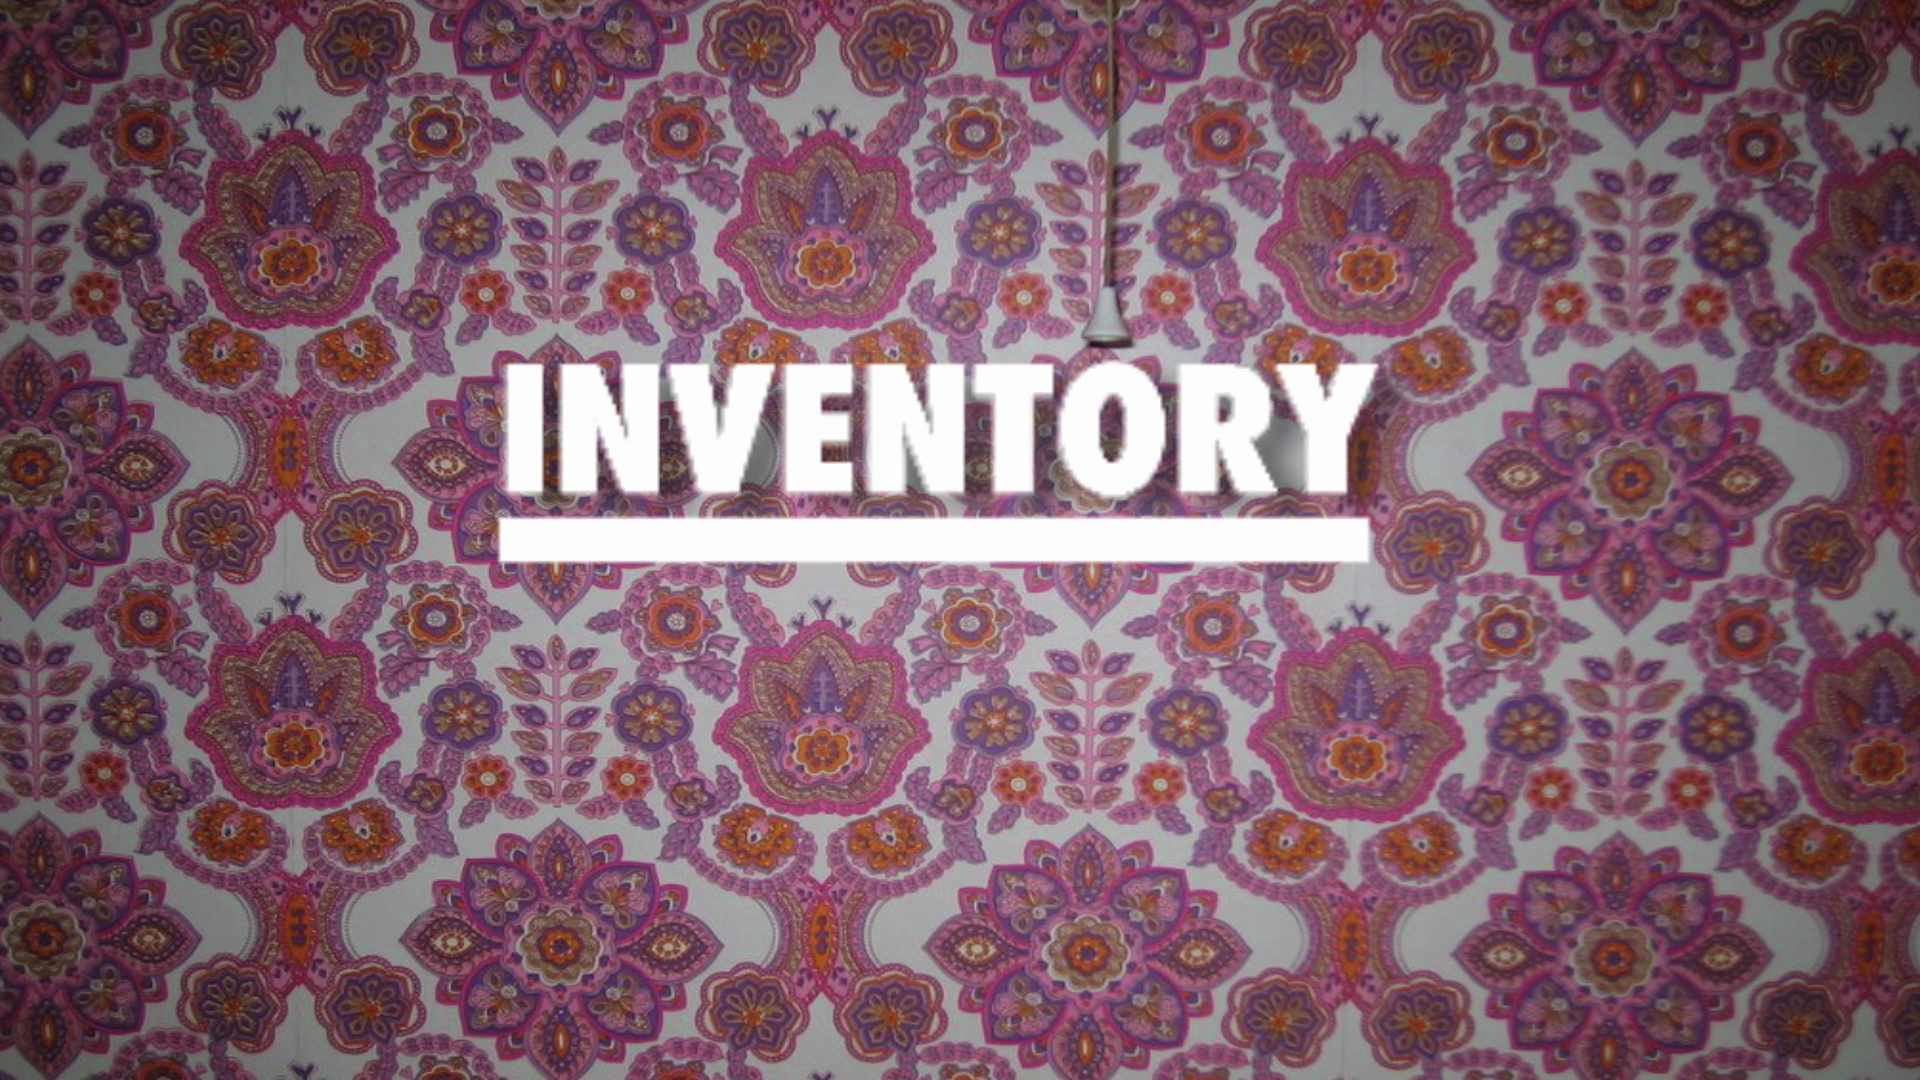 Announcing INVENTORY